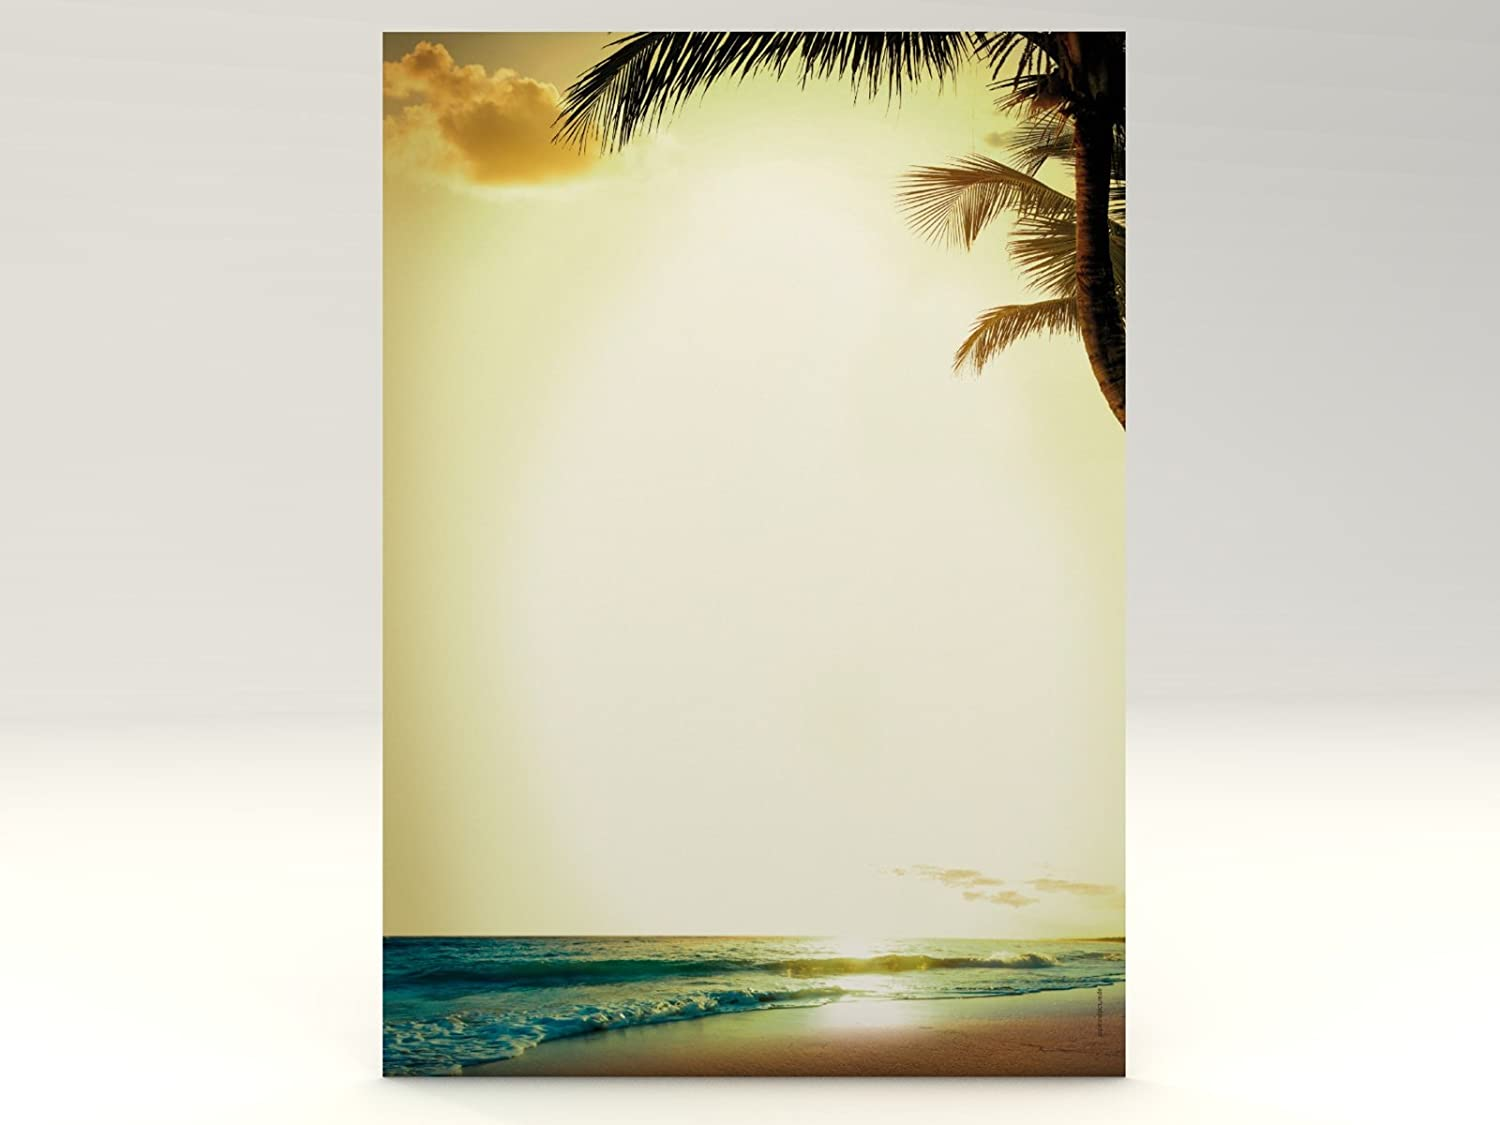 Romantic Sunset 20/Sheets of A4/100/g//qm High-Quality Paper F /& # x178; Rlaser//Ink//Copy//Hand